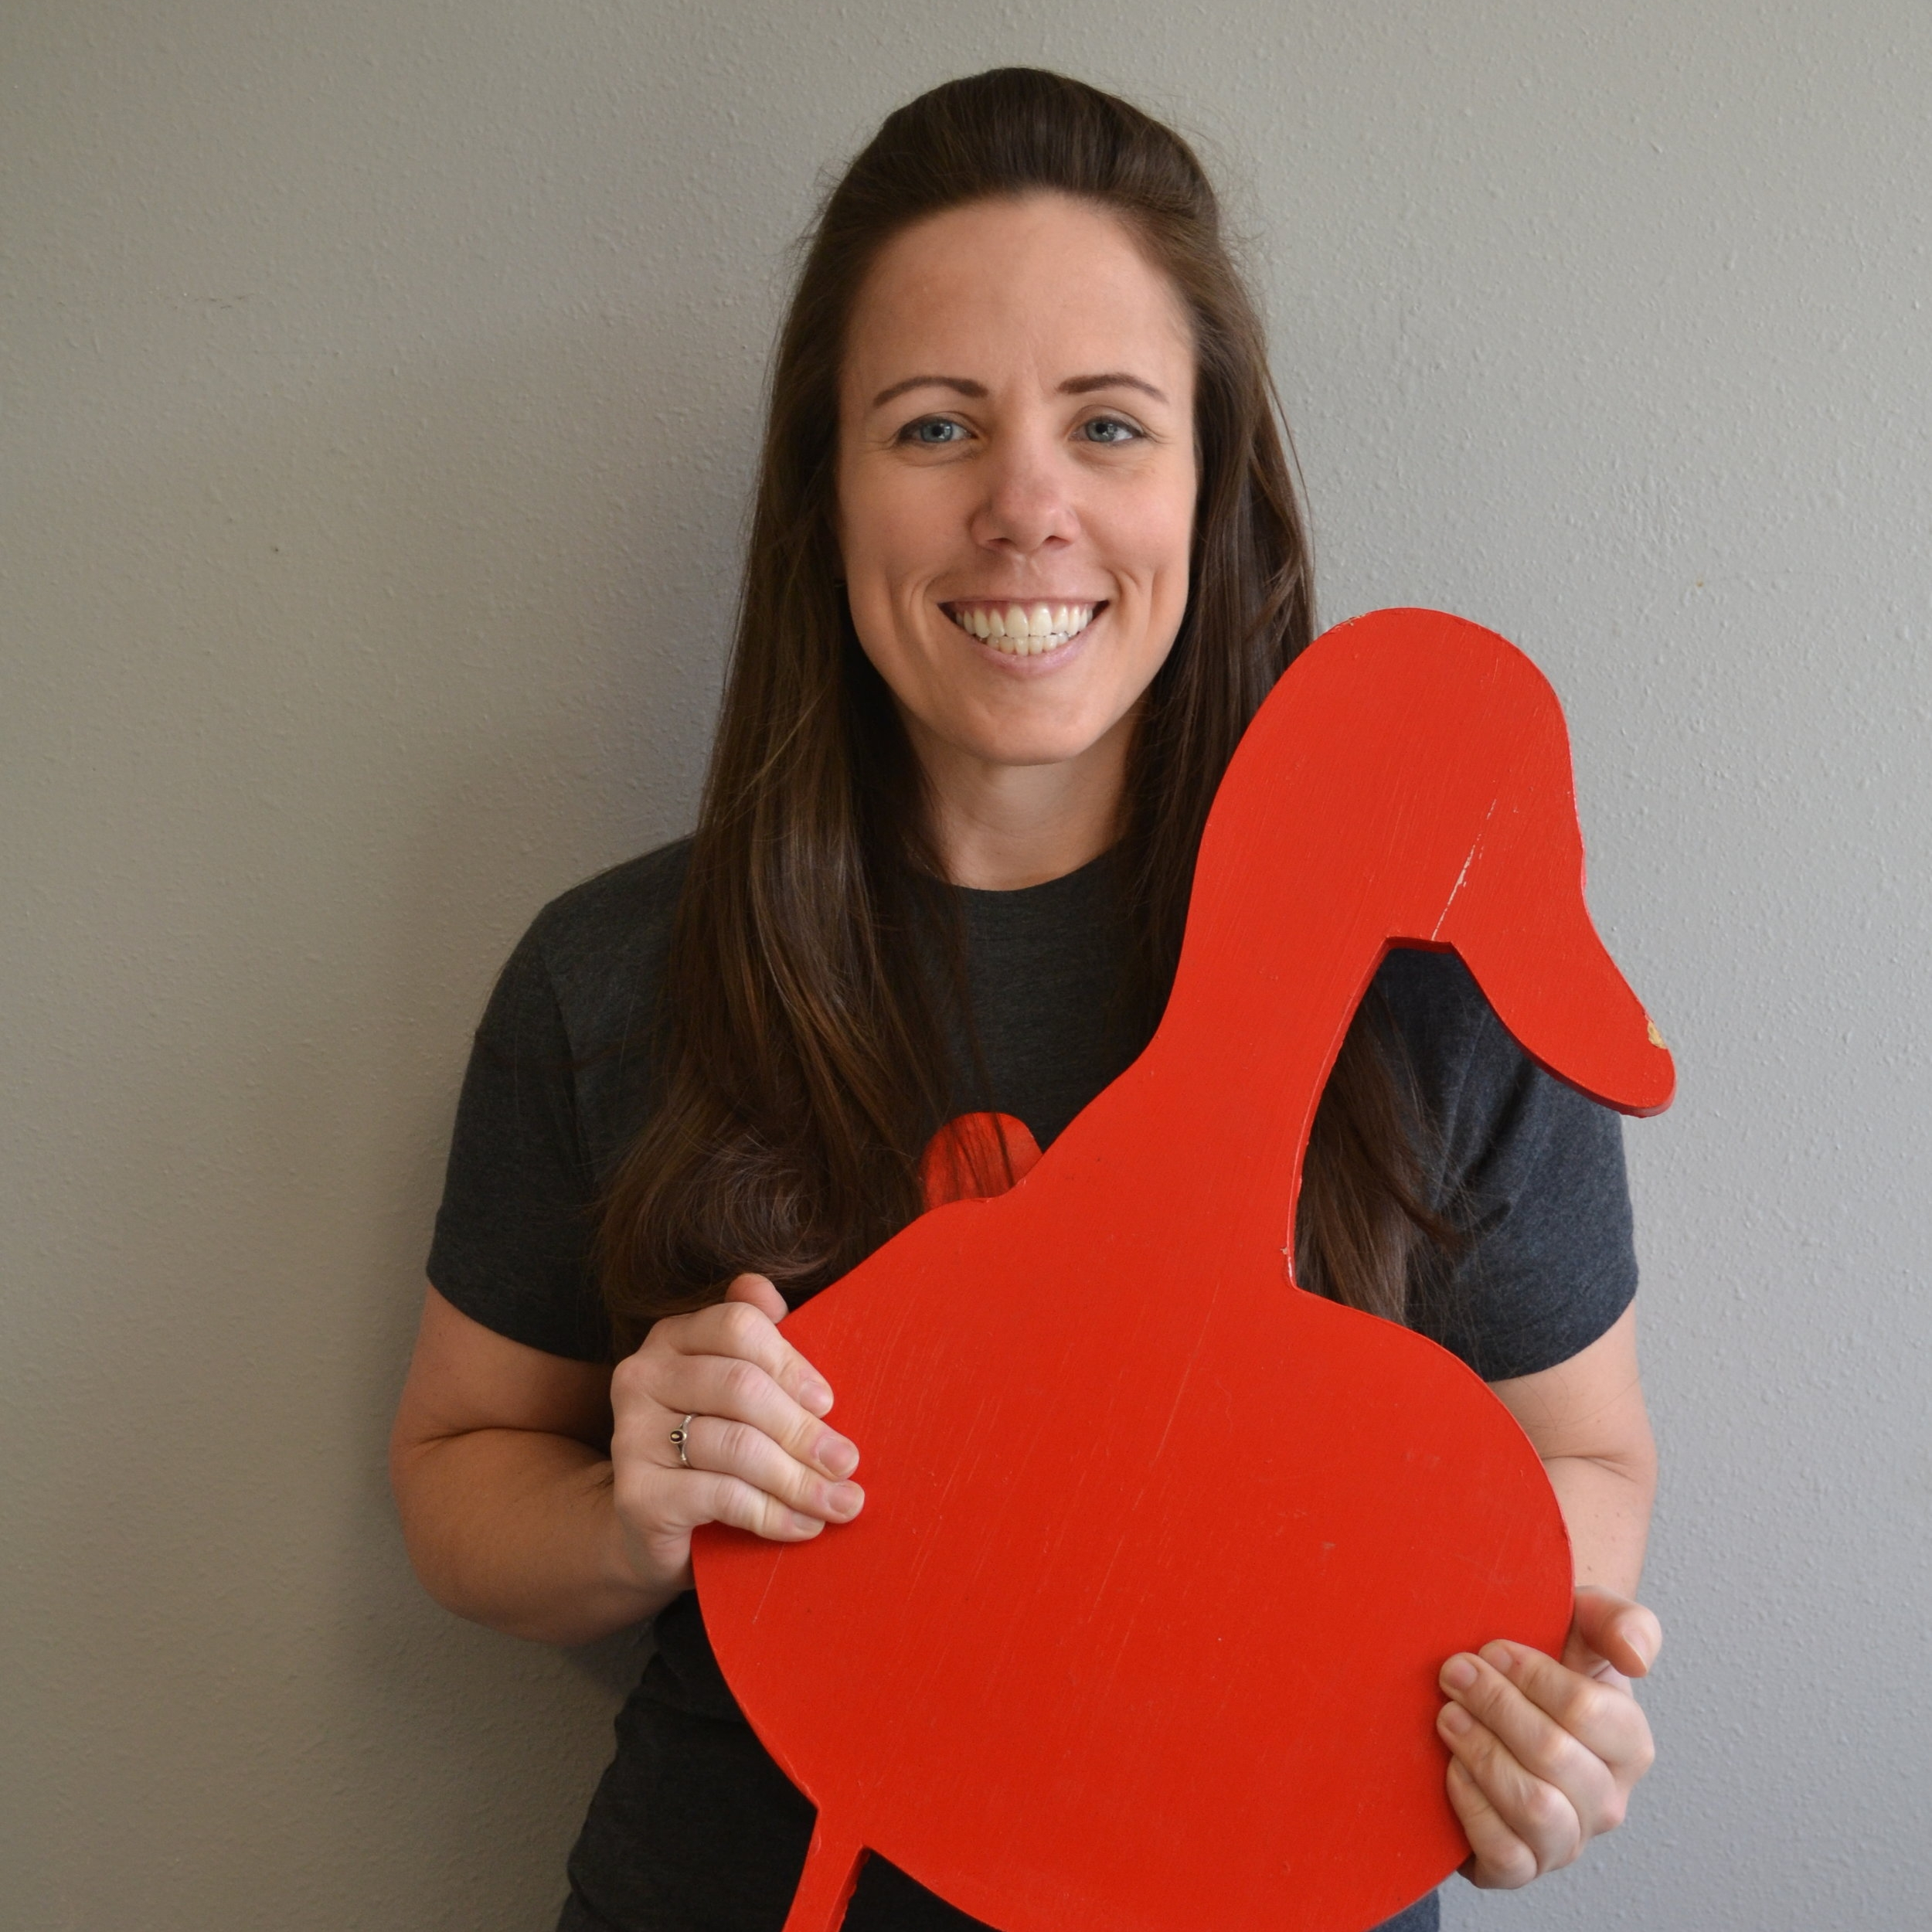 Shannon is one of the Co-Founders of Red Duck Foods, Inc. and manages operations, supply chain, and R&D. She and two classmates started the company while earning their MBAs at the University of Oregon and have grown the company from 3 stores and 3 products in May 2013 to over 2400 stores nationally and 11 products in Oct 2017. Shannon also holds Bachelors Degrees in both Biology and Psychology from UC San Diego and enjoys running 100 mile trail races.